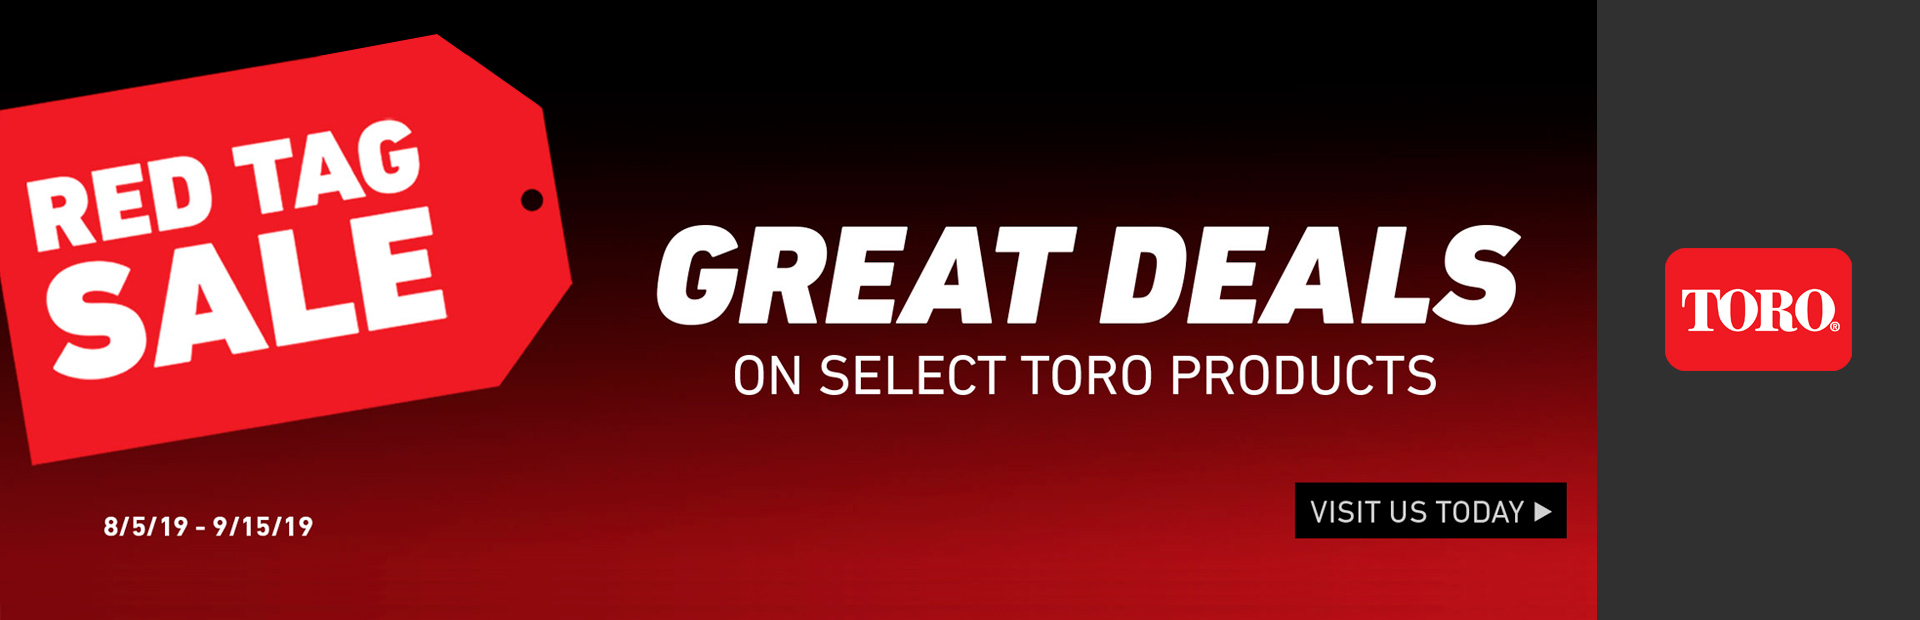 Toro: Red Tag Sales Event